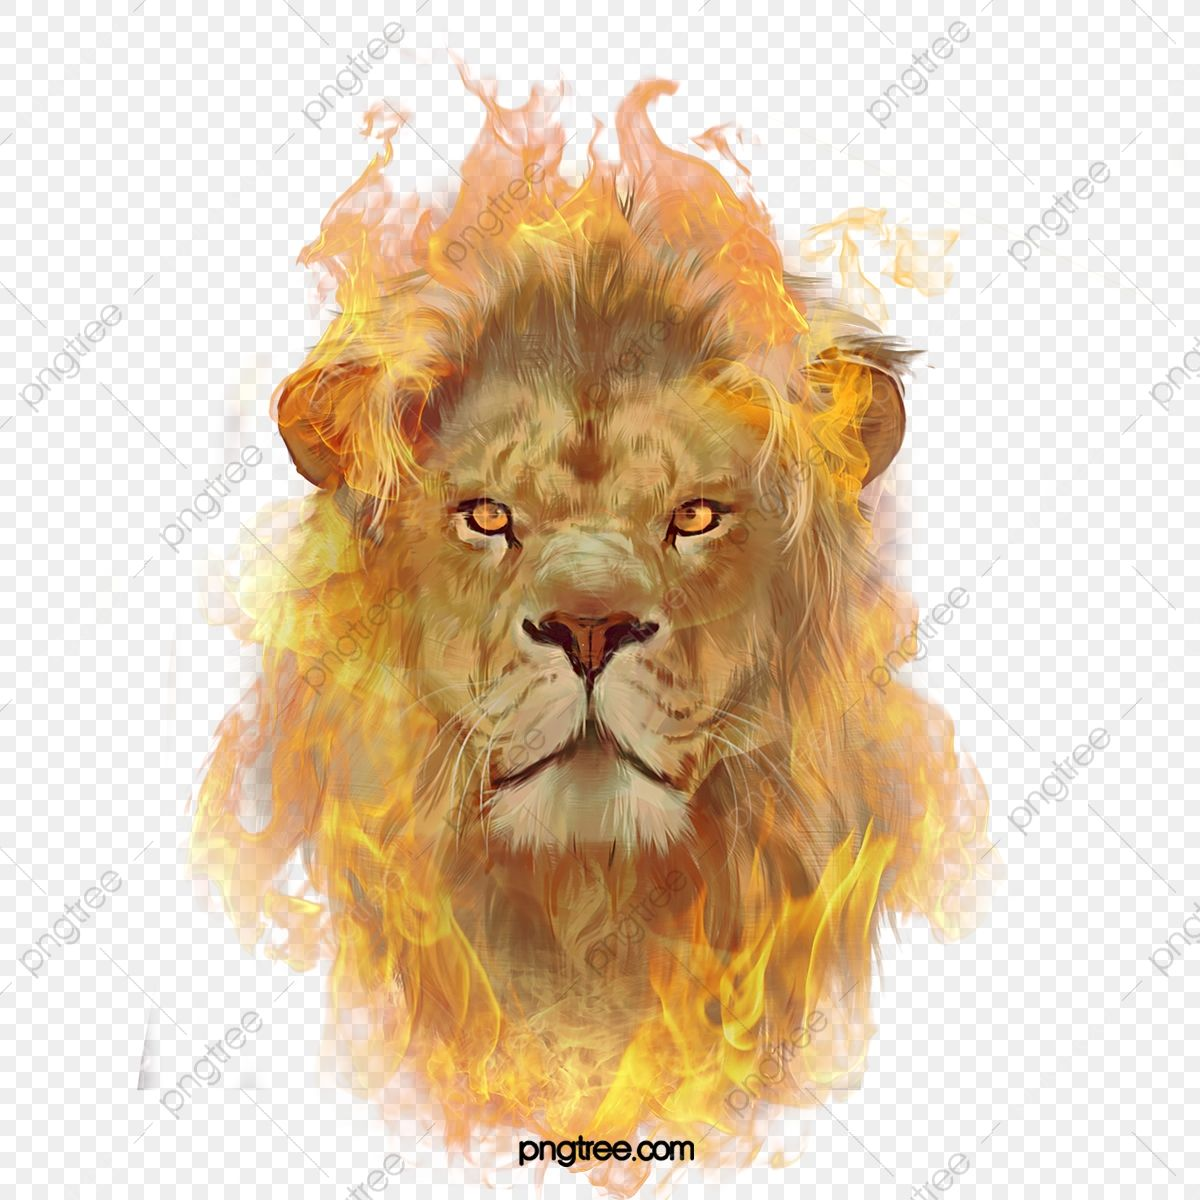 Flame Lion Combustion Illustration Elements Lion King Clipart Ferocious Hand Painted Png Transparent Clipart Image And Psd File For Free Download Lion Illustration Fire Icons Blur Background In Photoshop